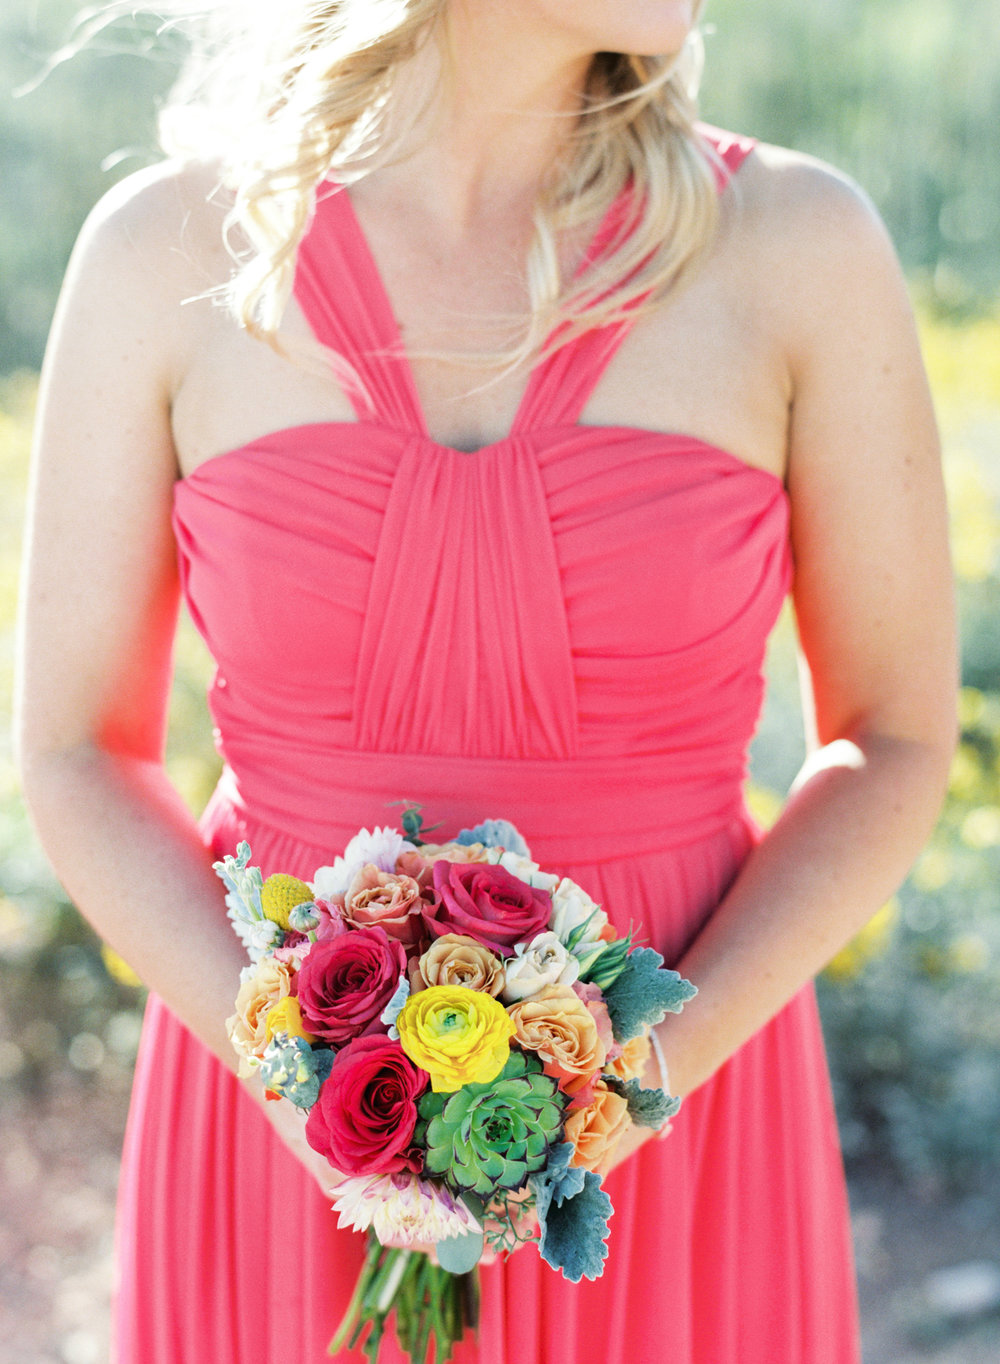 Bright & Colorful bouquet by Alexis Grace Florals